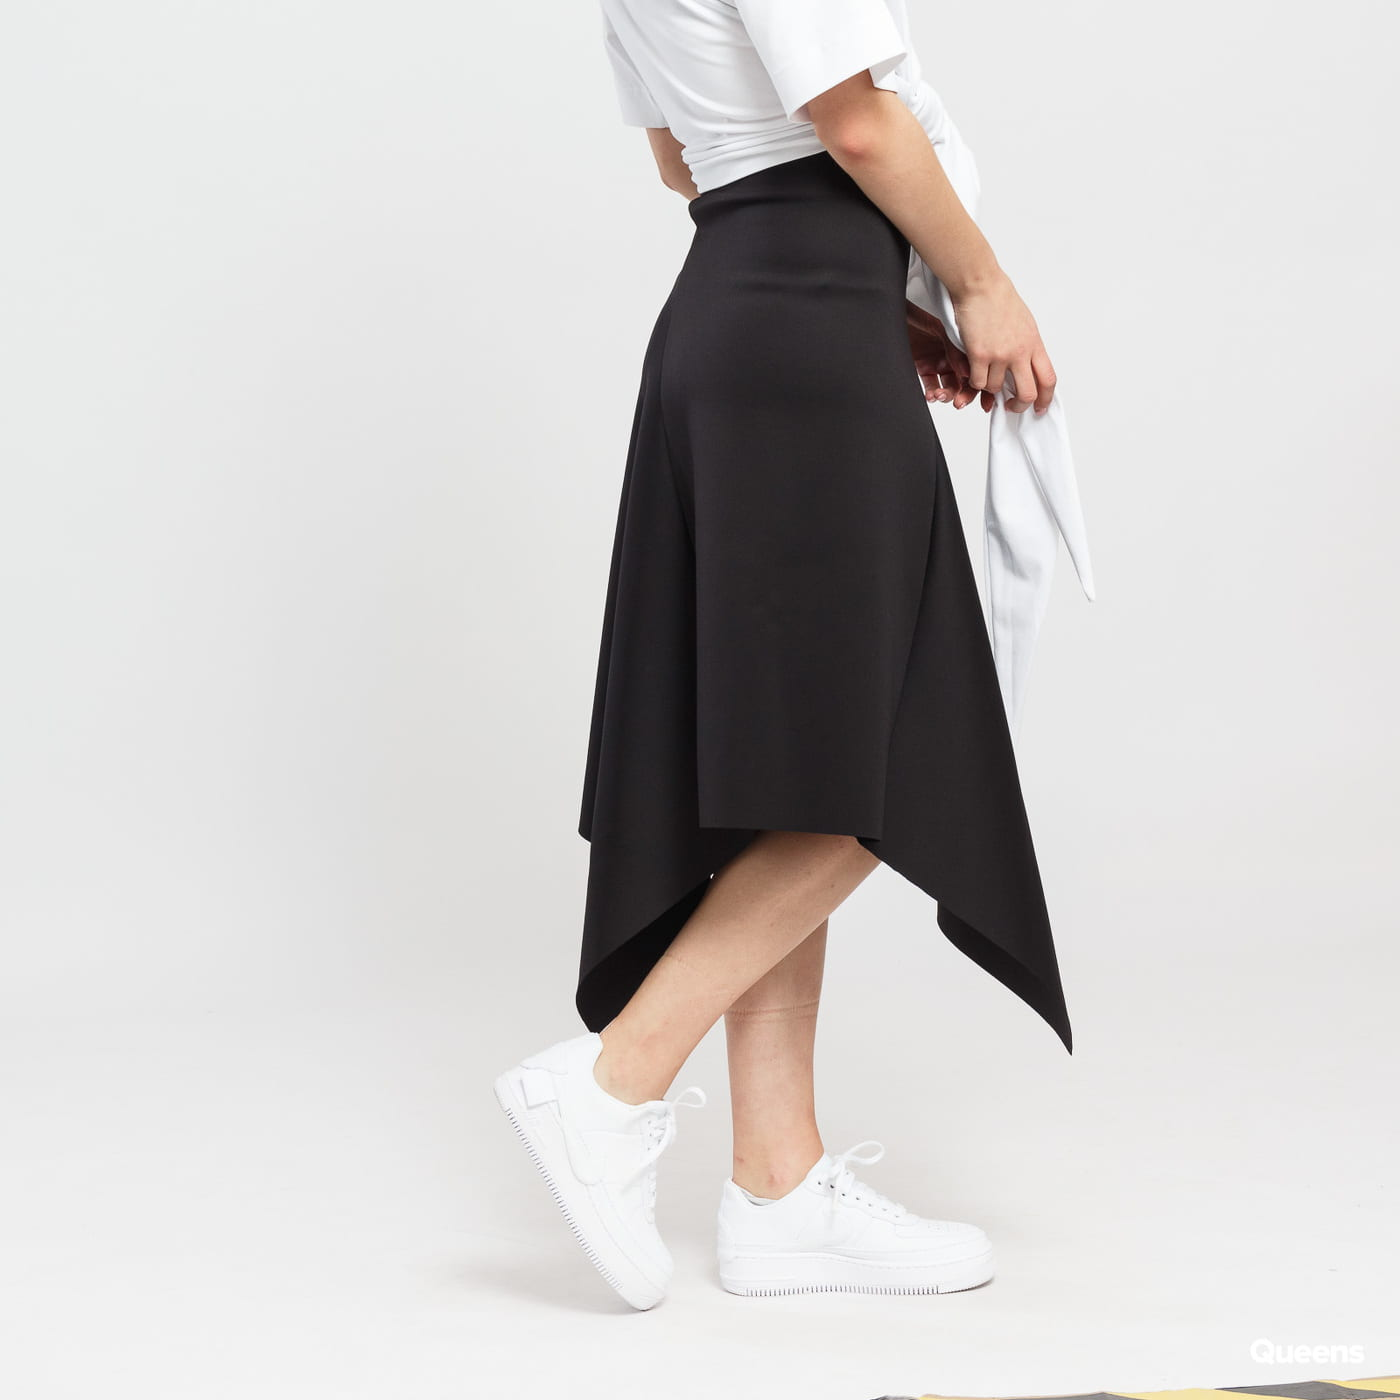 ODIVI Dream Skirt black